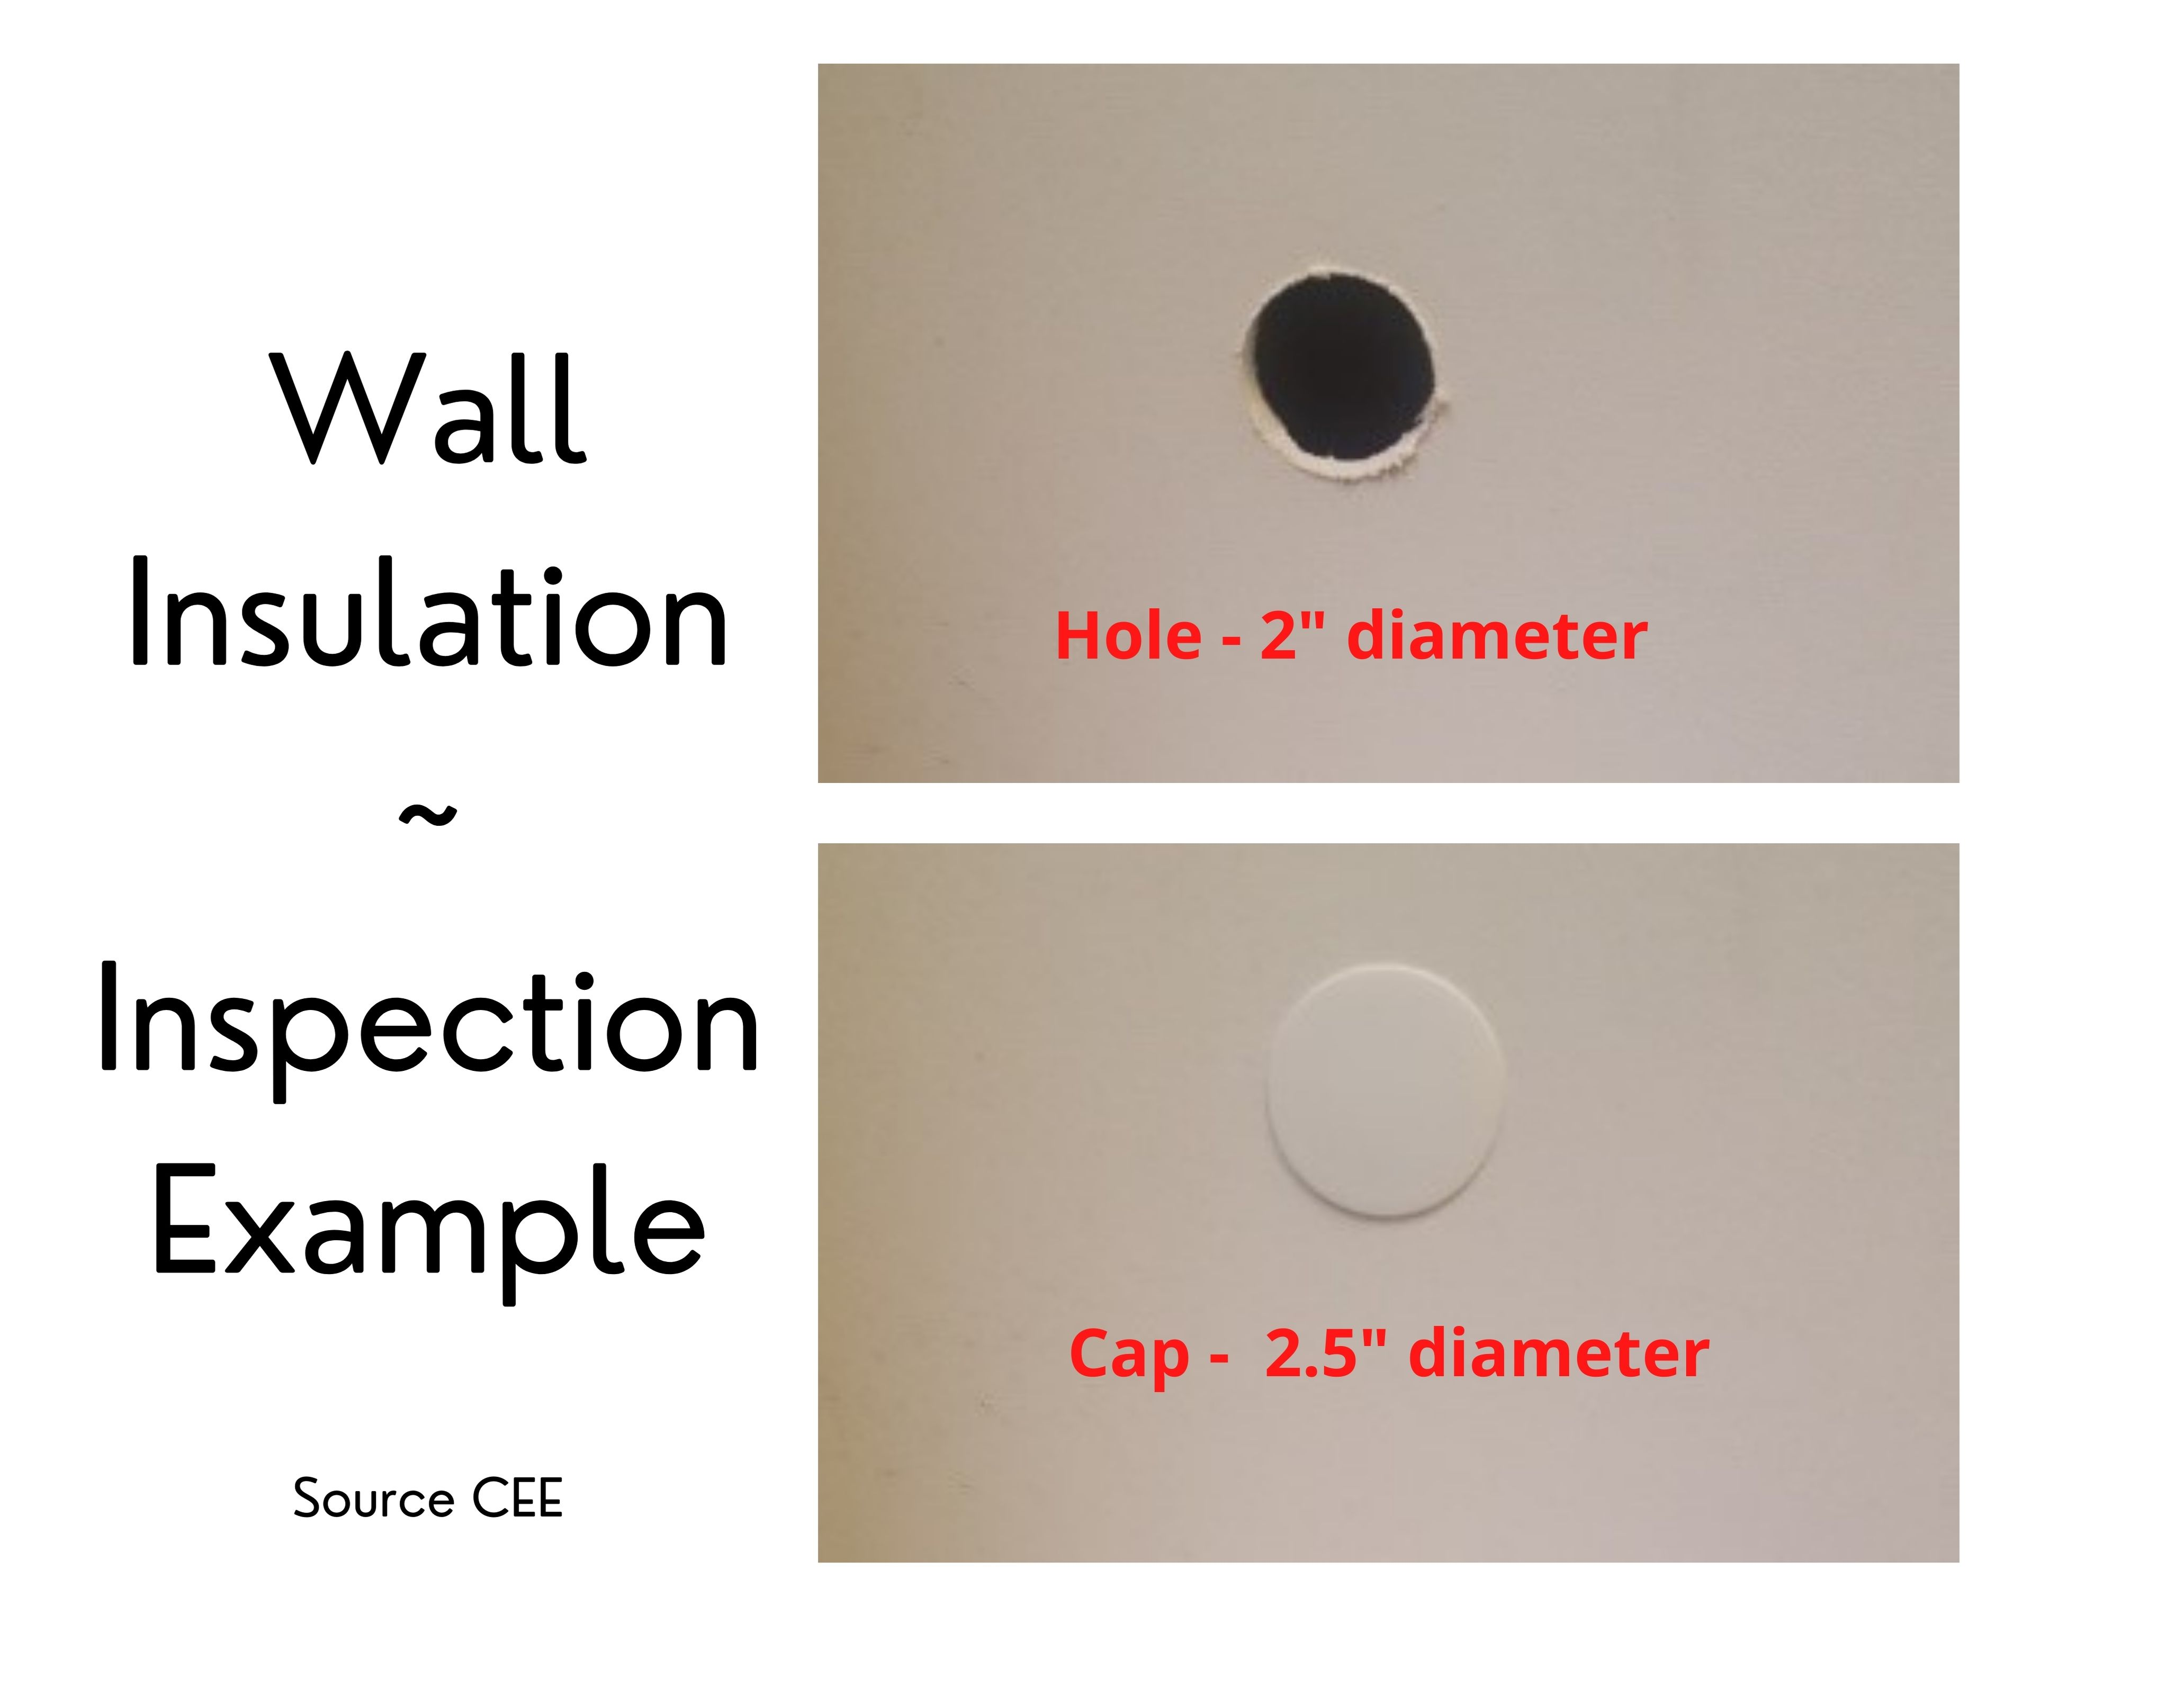 Photos of wall insulation inspection hole  2 inches diameter and cap 2.5 inches diameter.